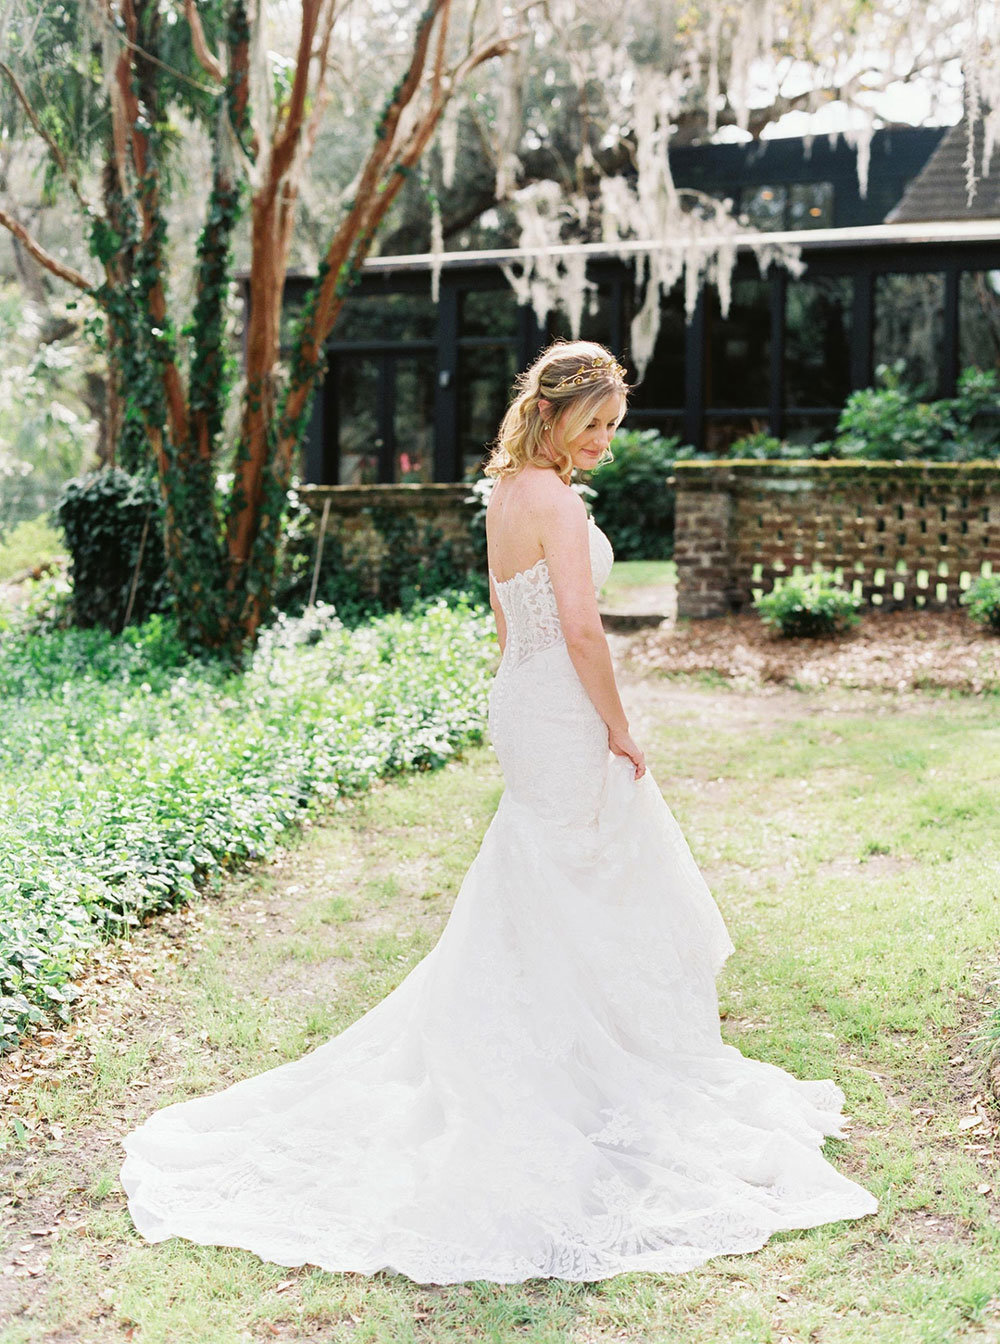 Bride in wedding dress standing on the lawn